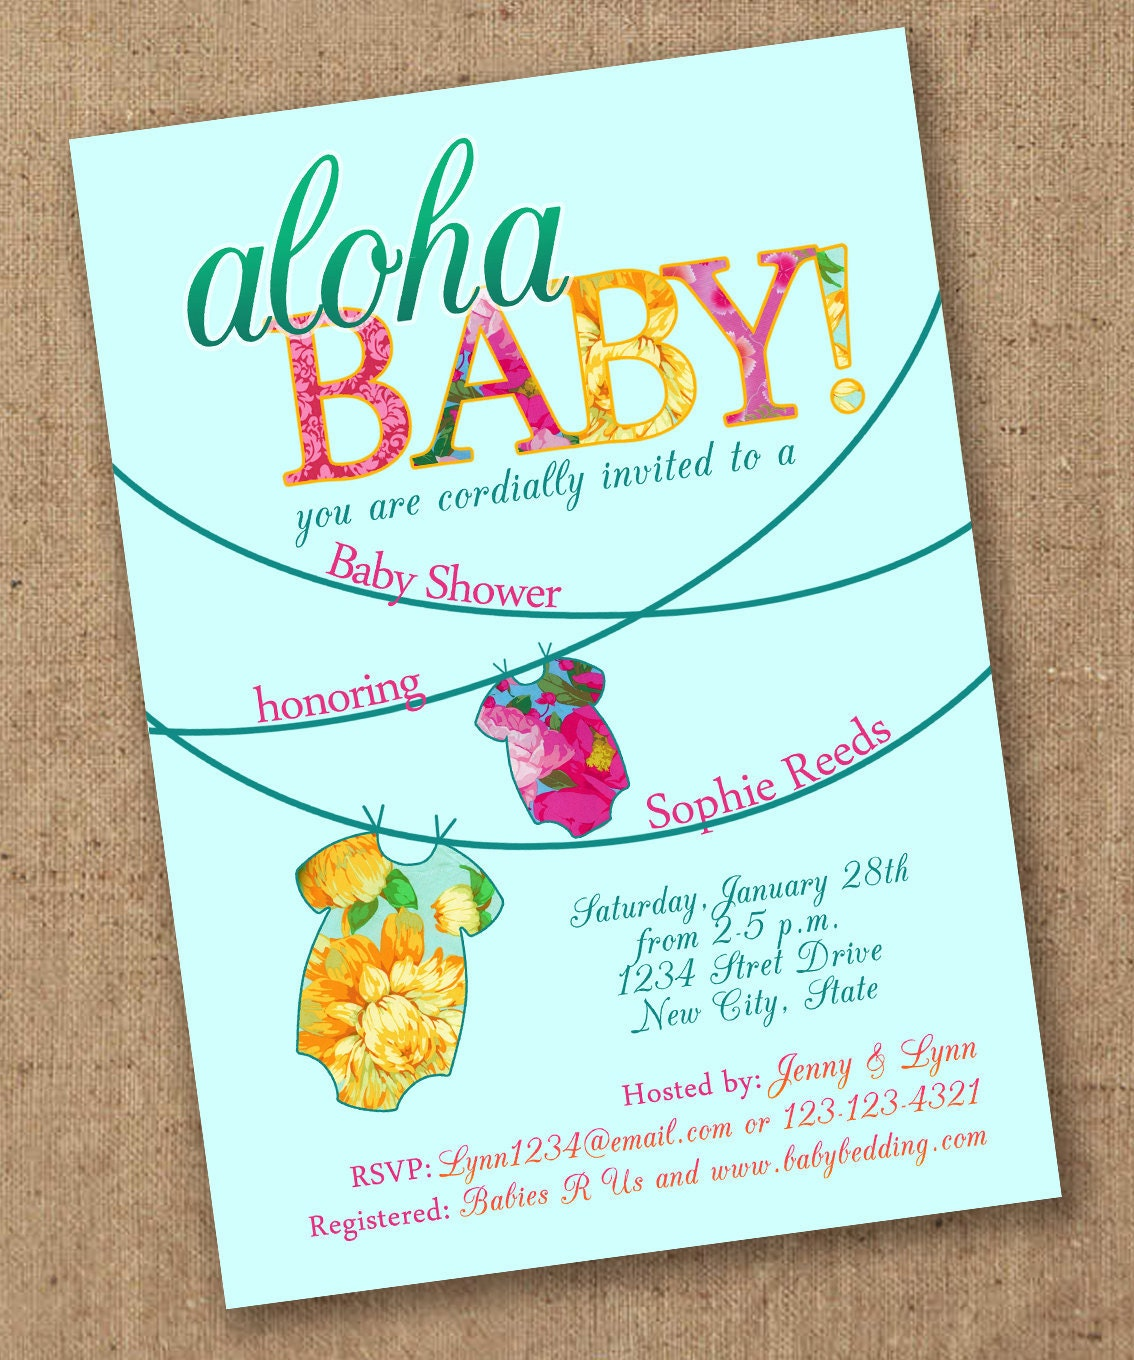 Luau Invitation Wording was great invitation example